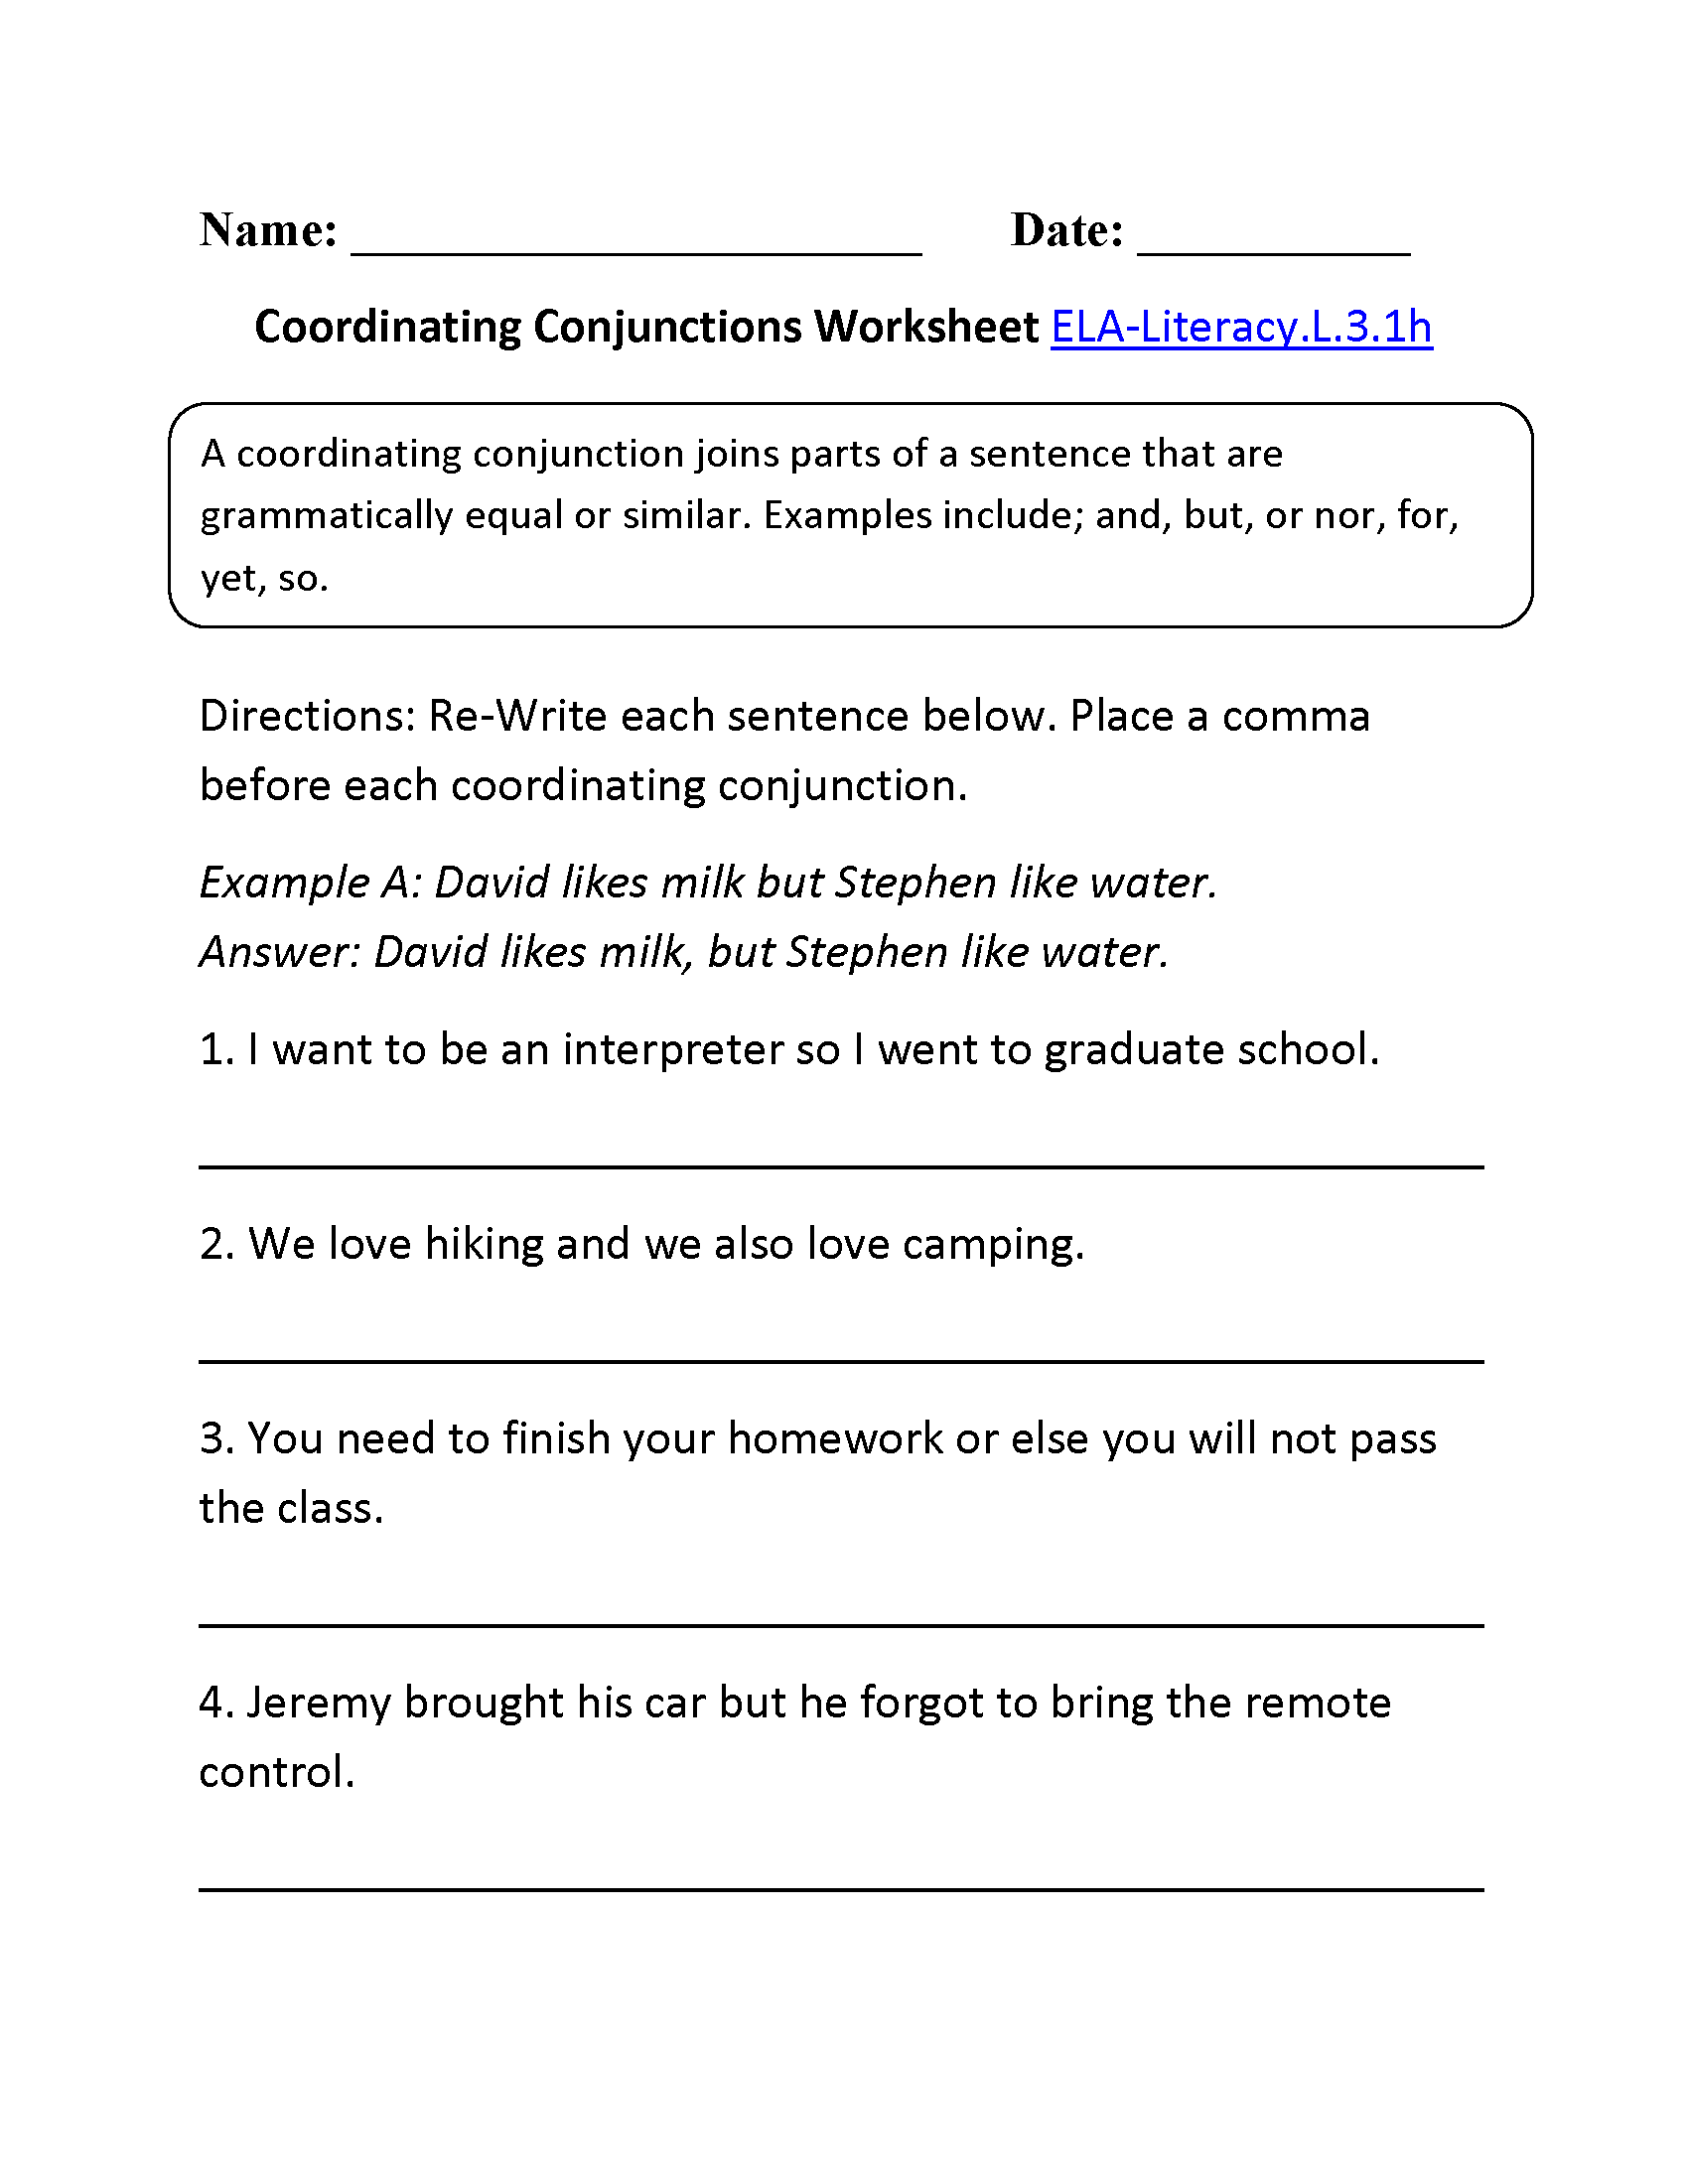 Free Worksheet Conjunction Worksheets 3rd grade common core language worksheets coordinating conjunctions worksheet 2 ela literacy l 3 1h worksheet